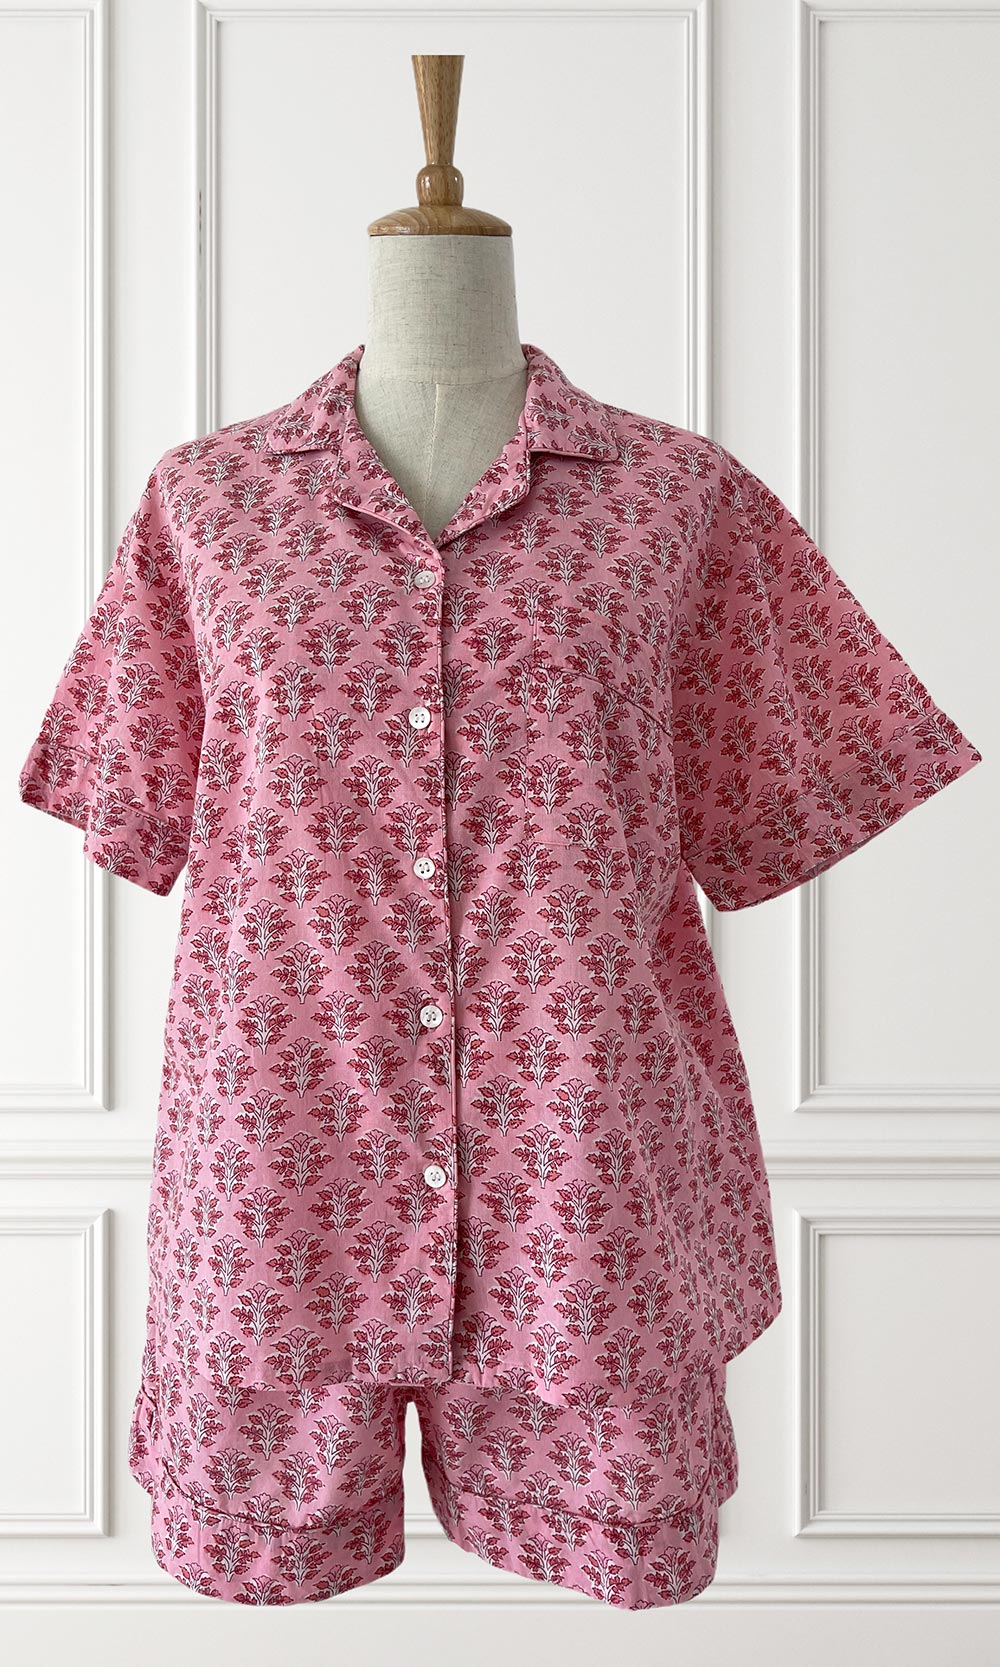 Hand Block Printed Indian Cotton Pyjamas Pink